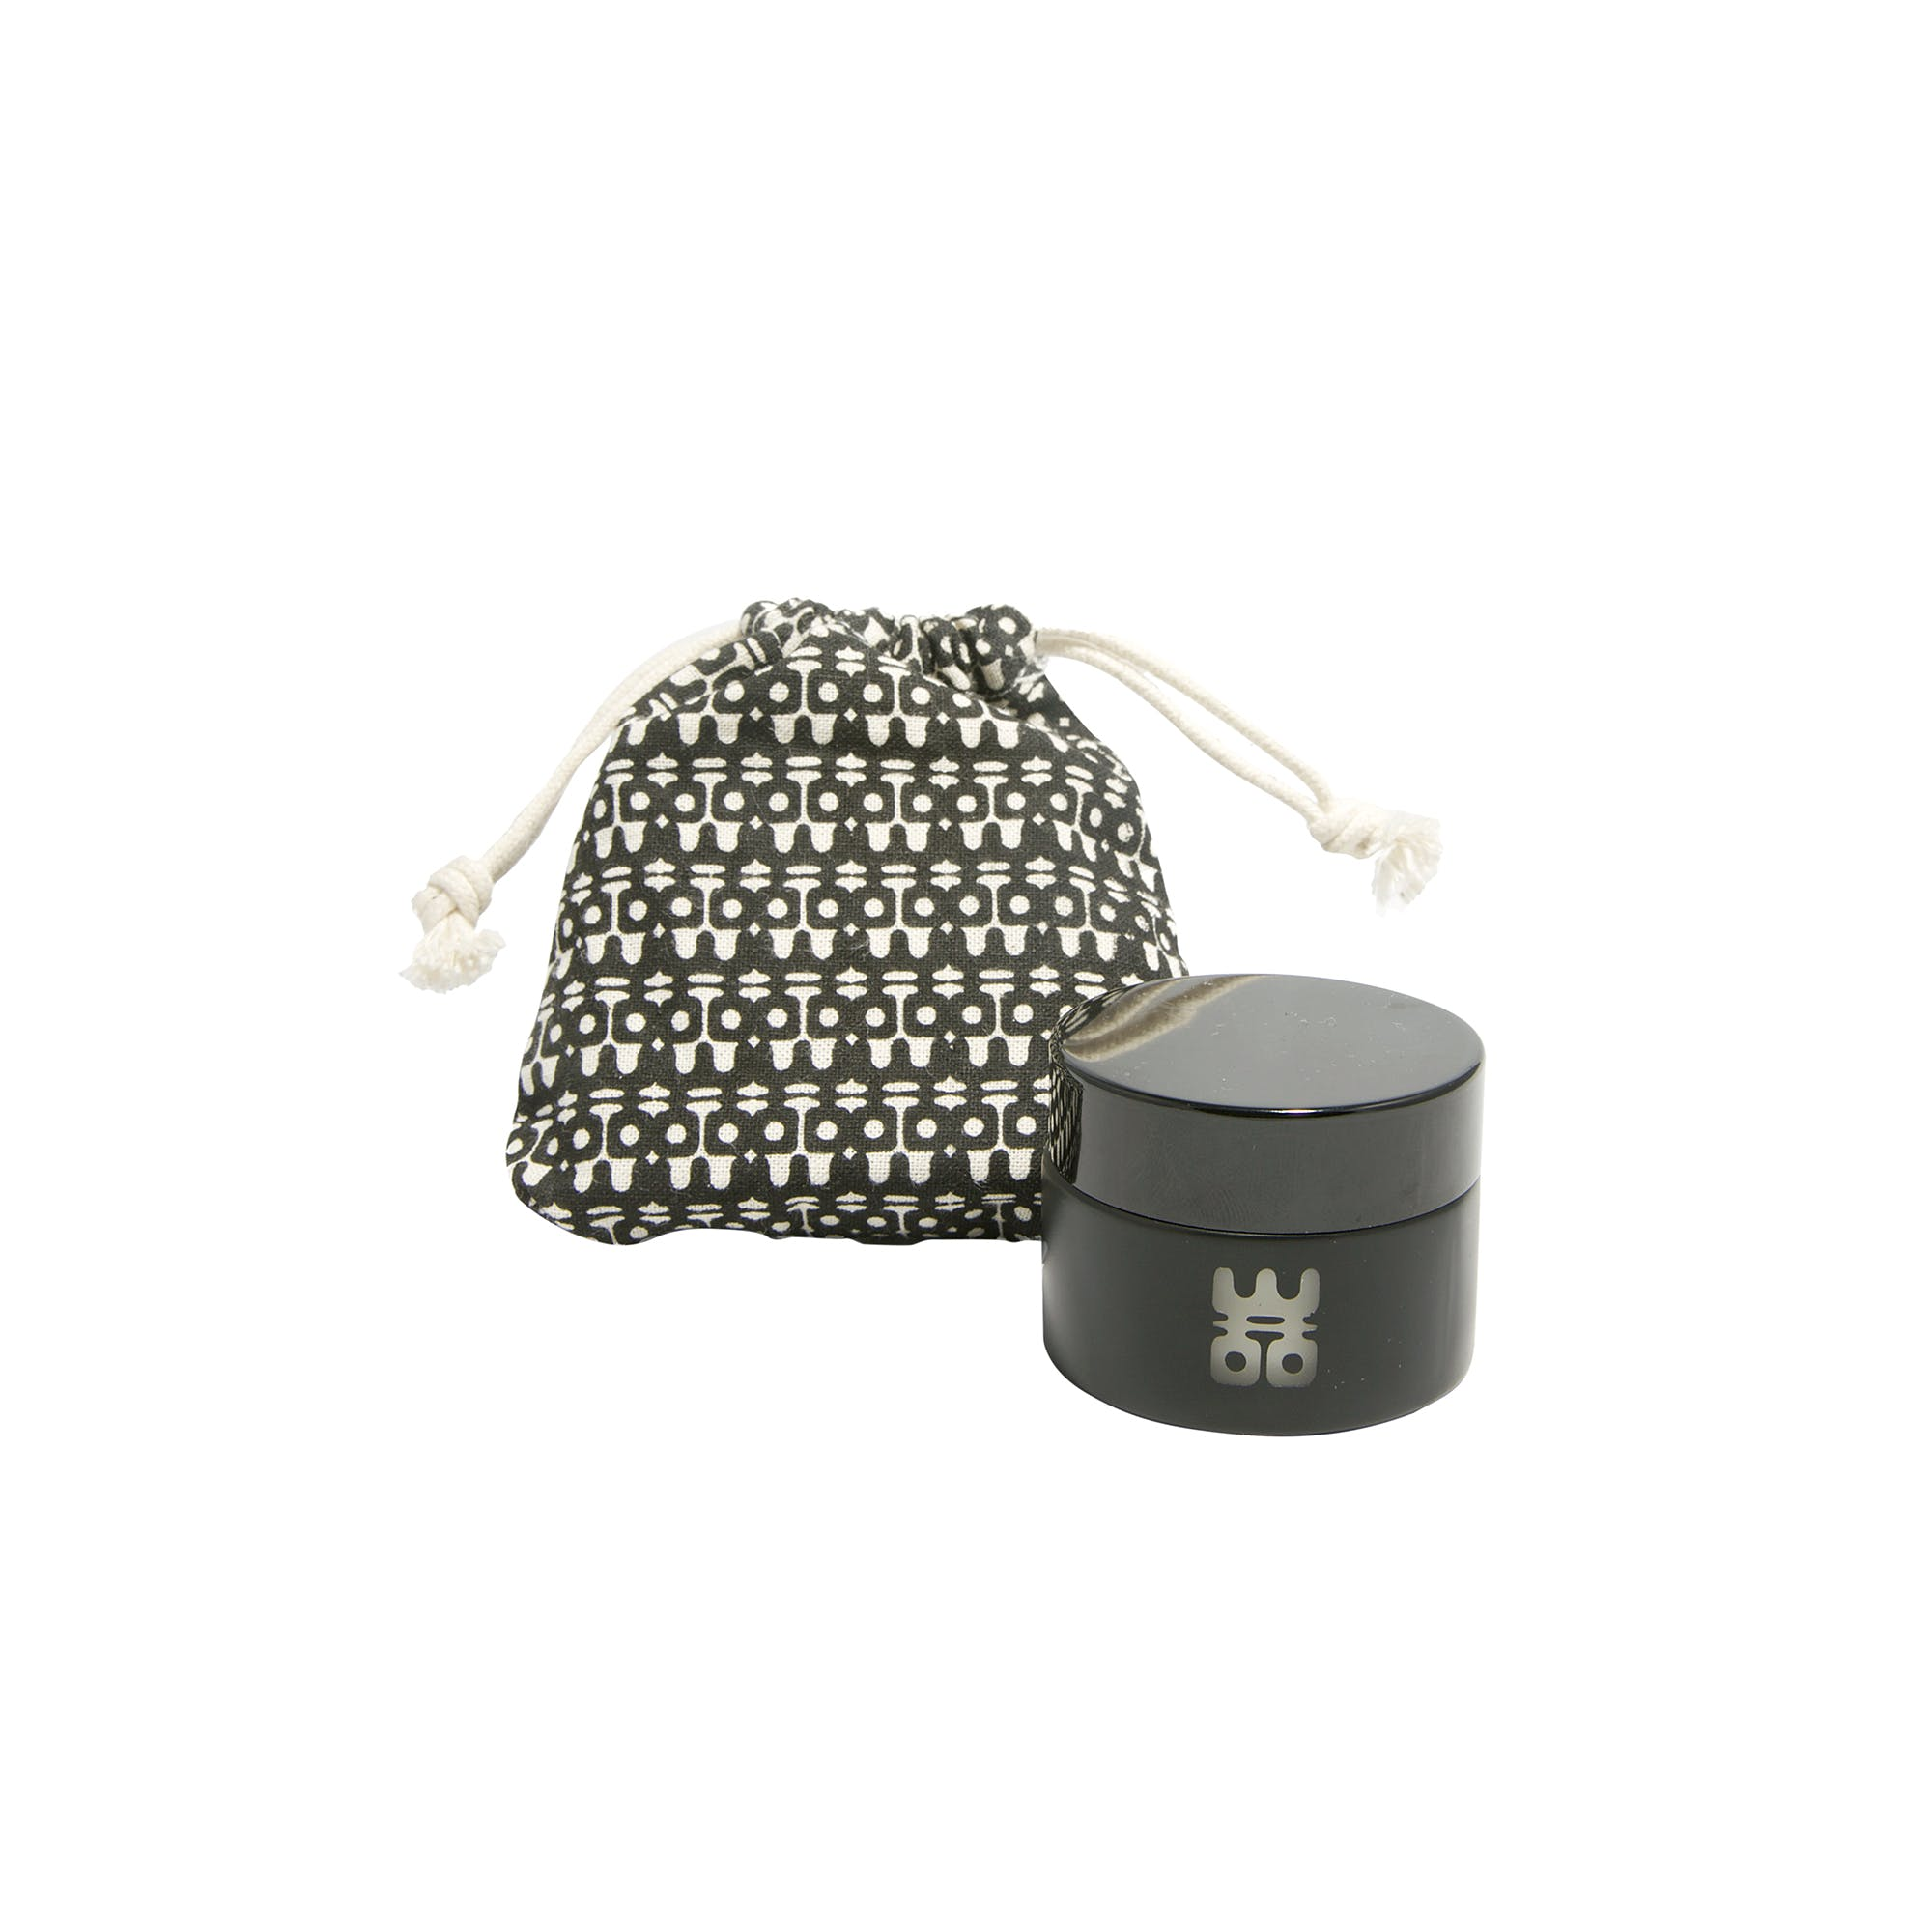 WOO Travel Candle